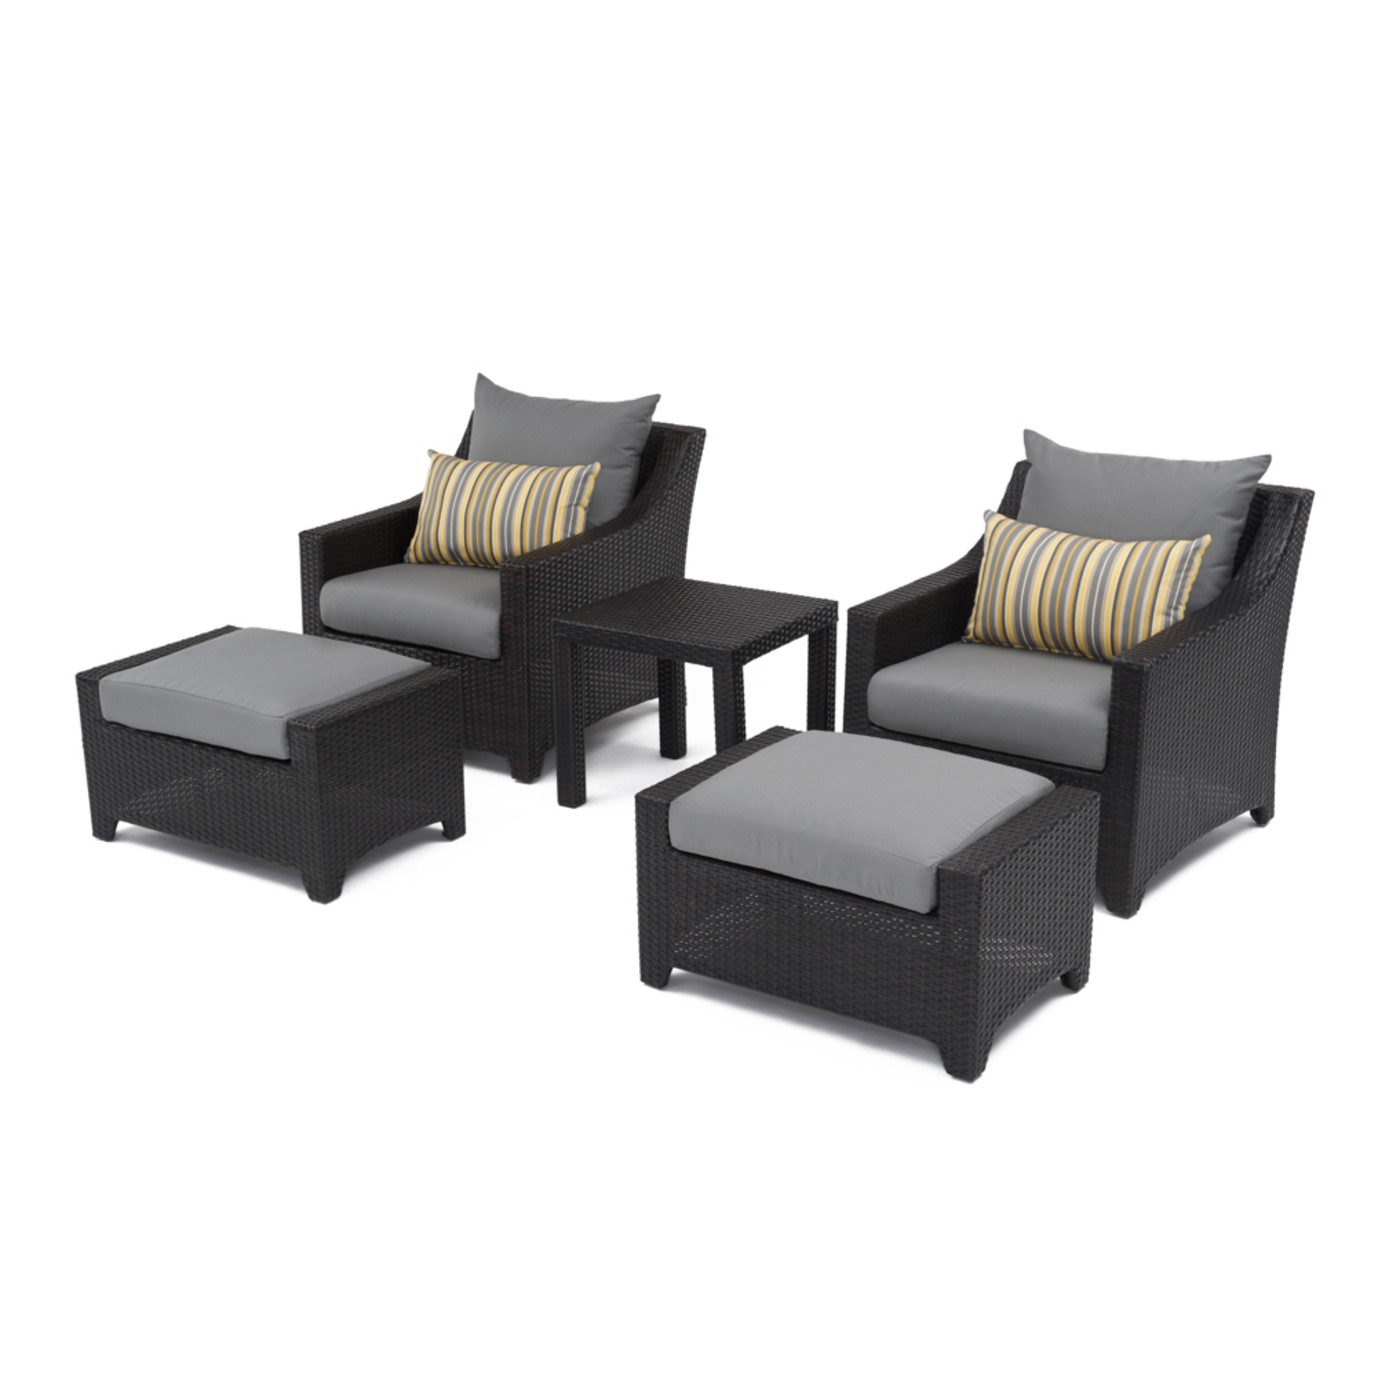 Deco™ 5pc Club Chair and Ottoman Set - Charcoal Grey